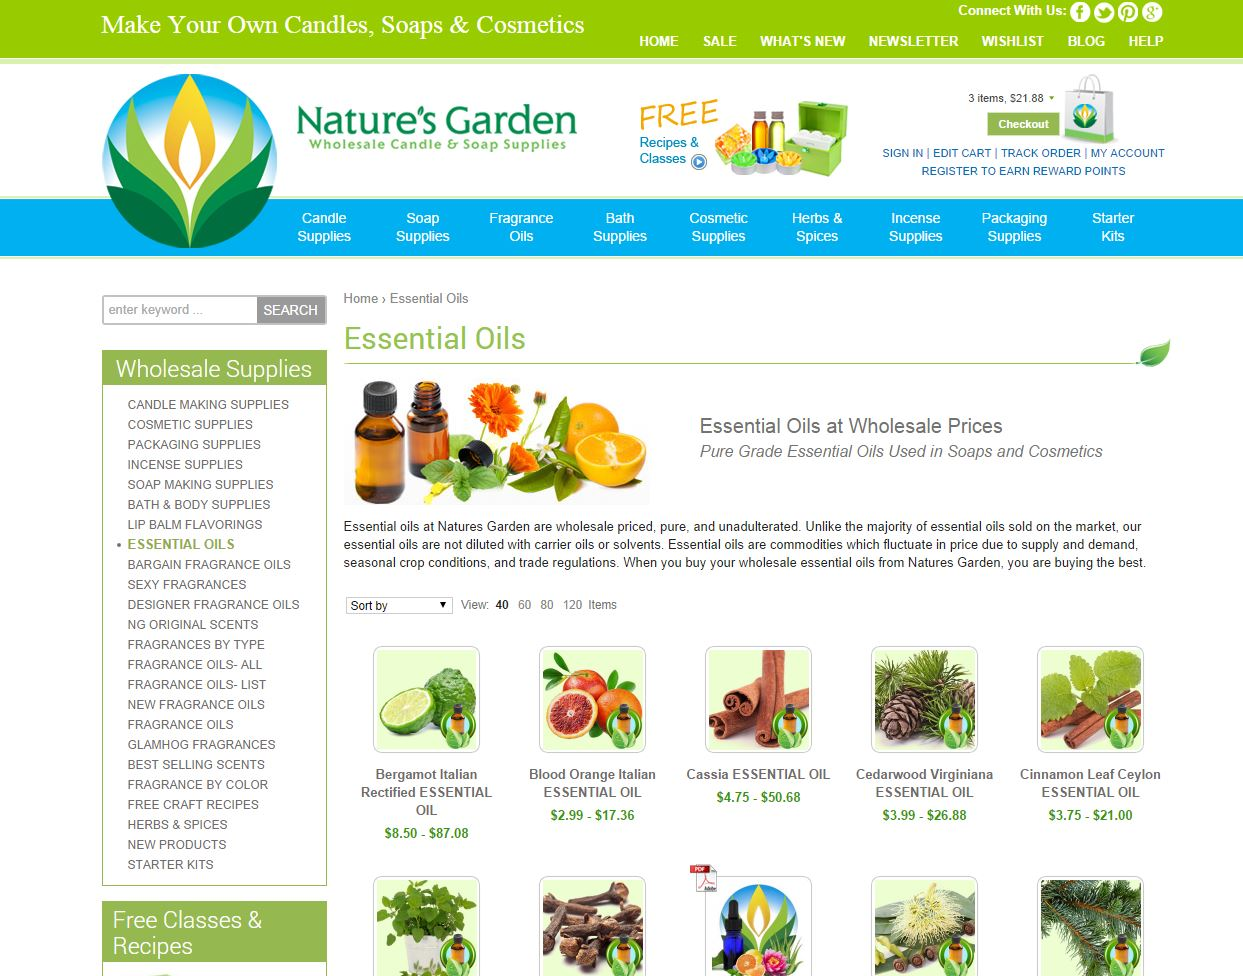 Are Natures Garden Oils Natural